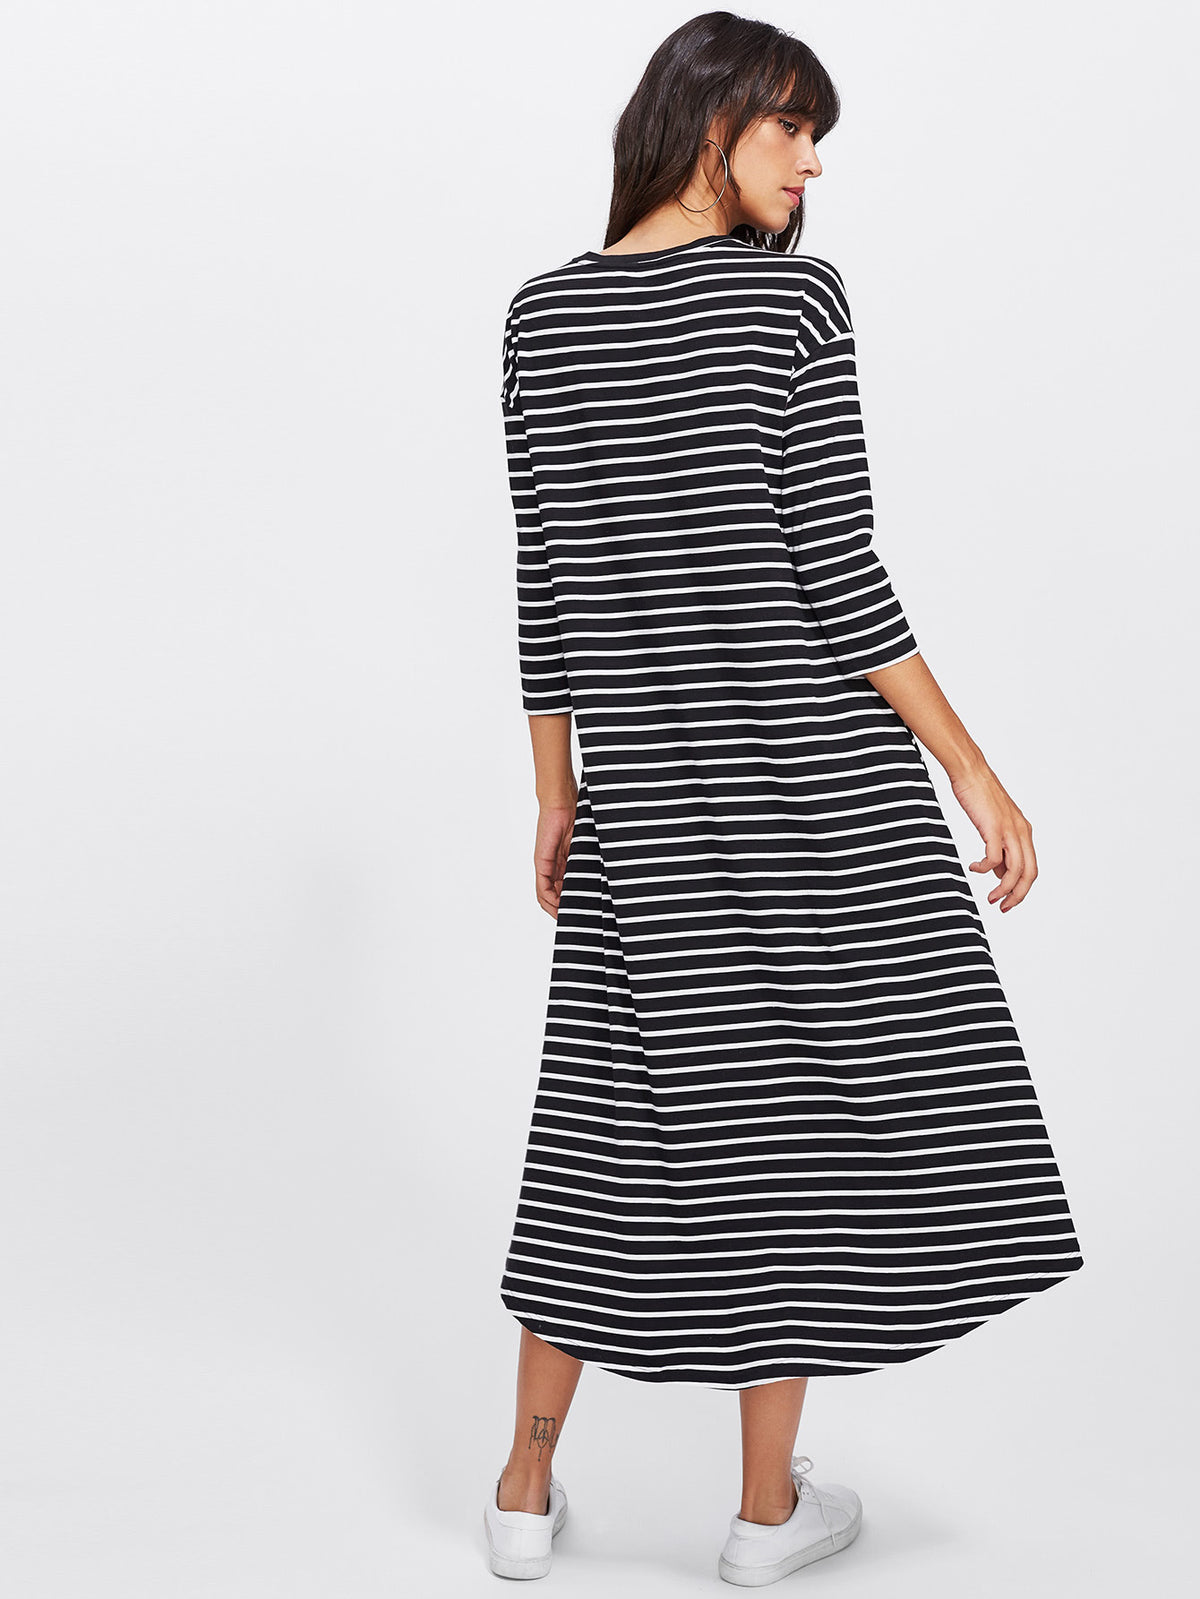 Striped Swing Tee Dress